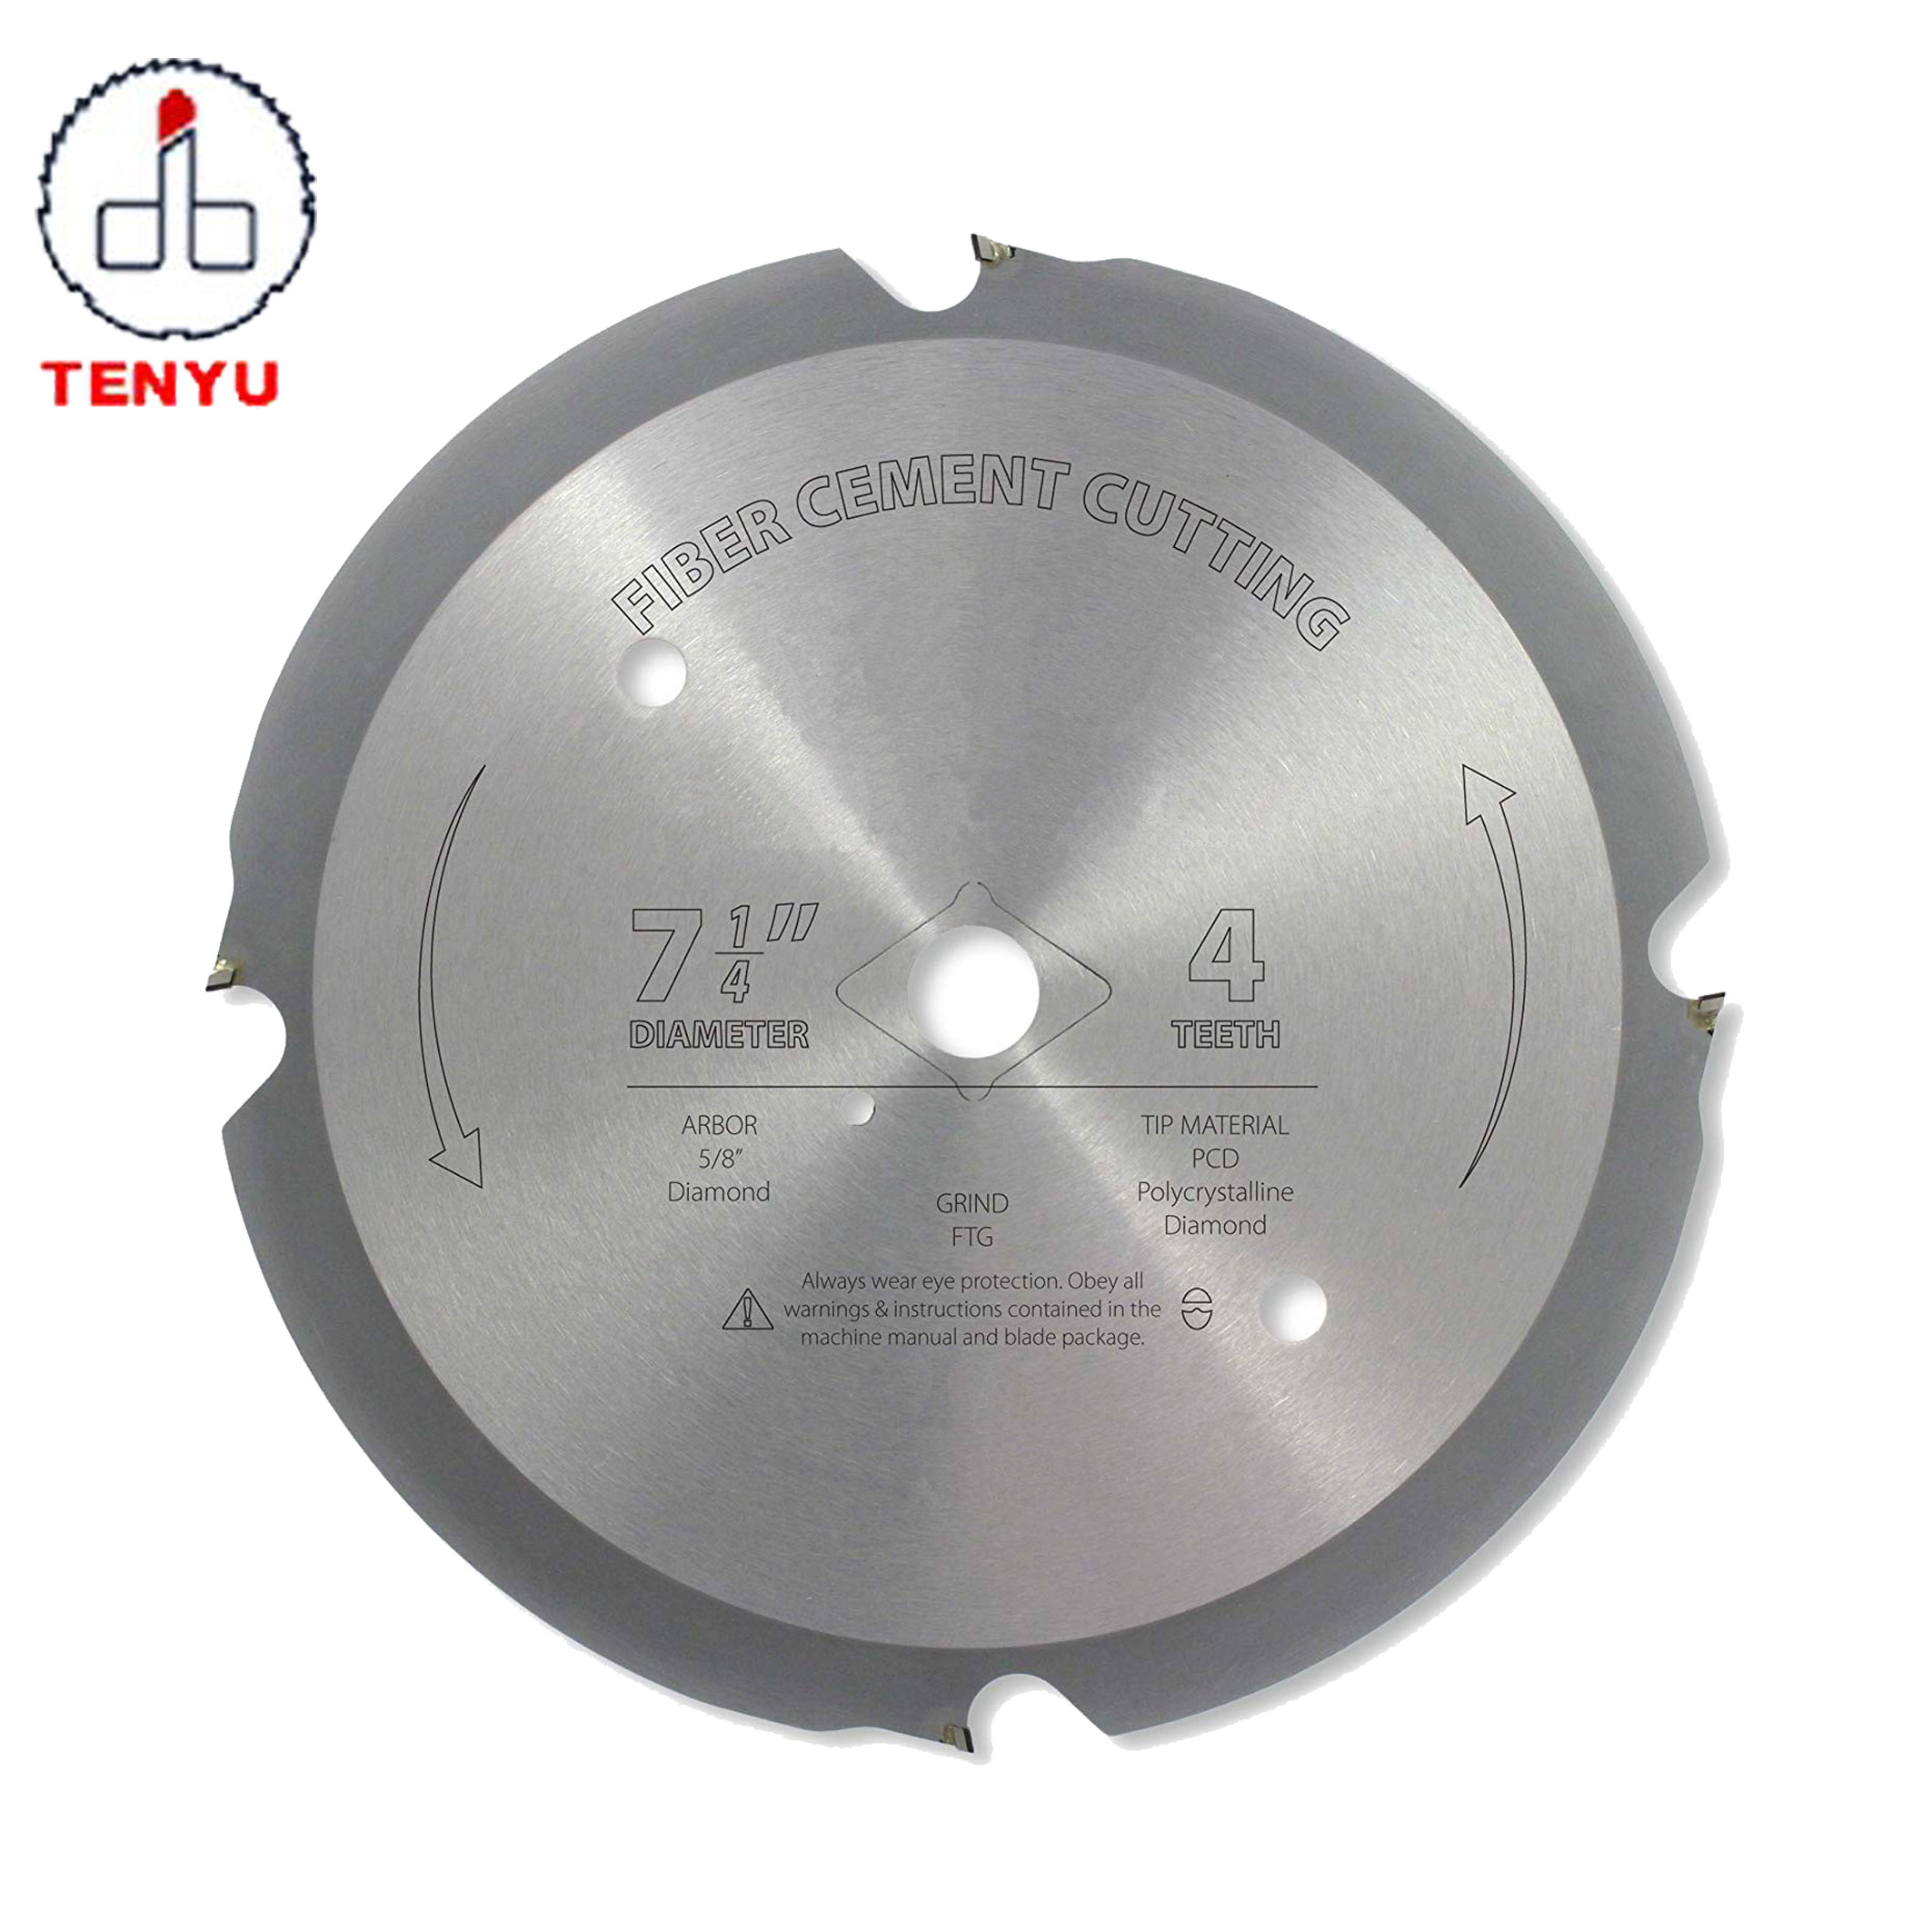 Fiber Cement Cutting PCD Saw <strong>Blade</strong> 7-1/4-Inch 4 Teeth Polycrystalline Diamond (7-1/4&quot; X 4T)